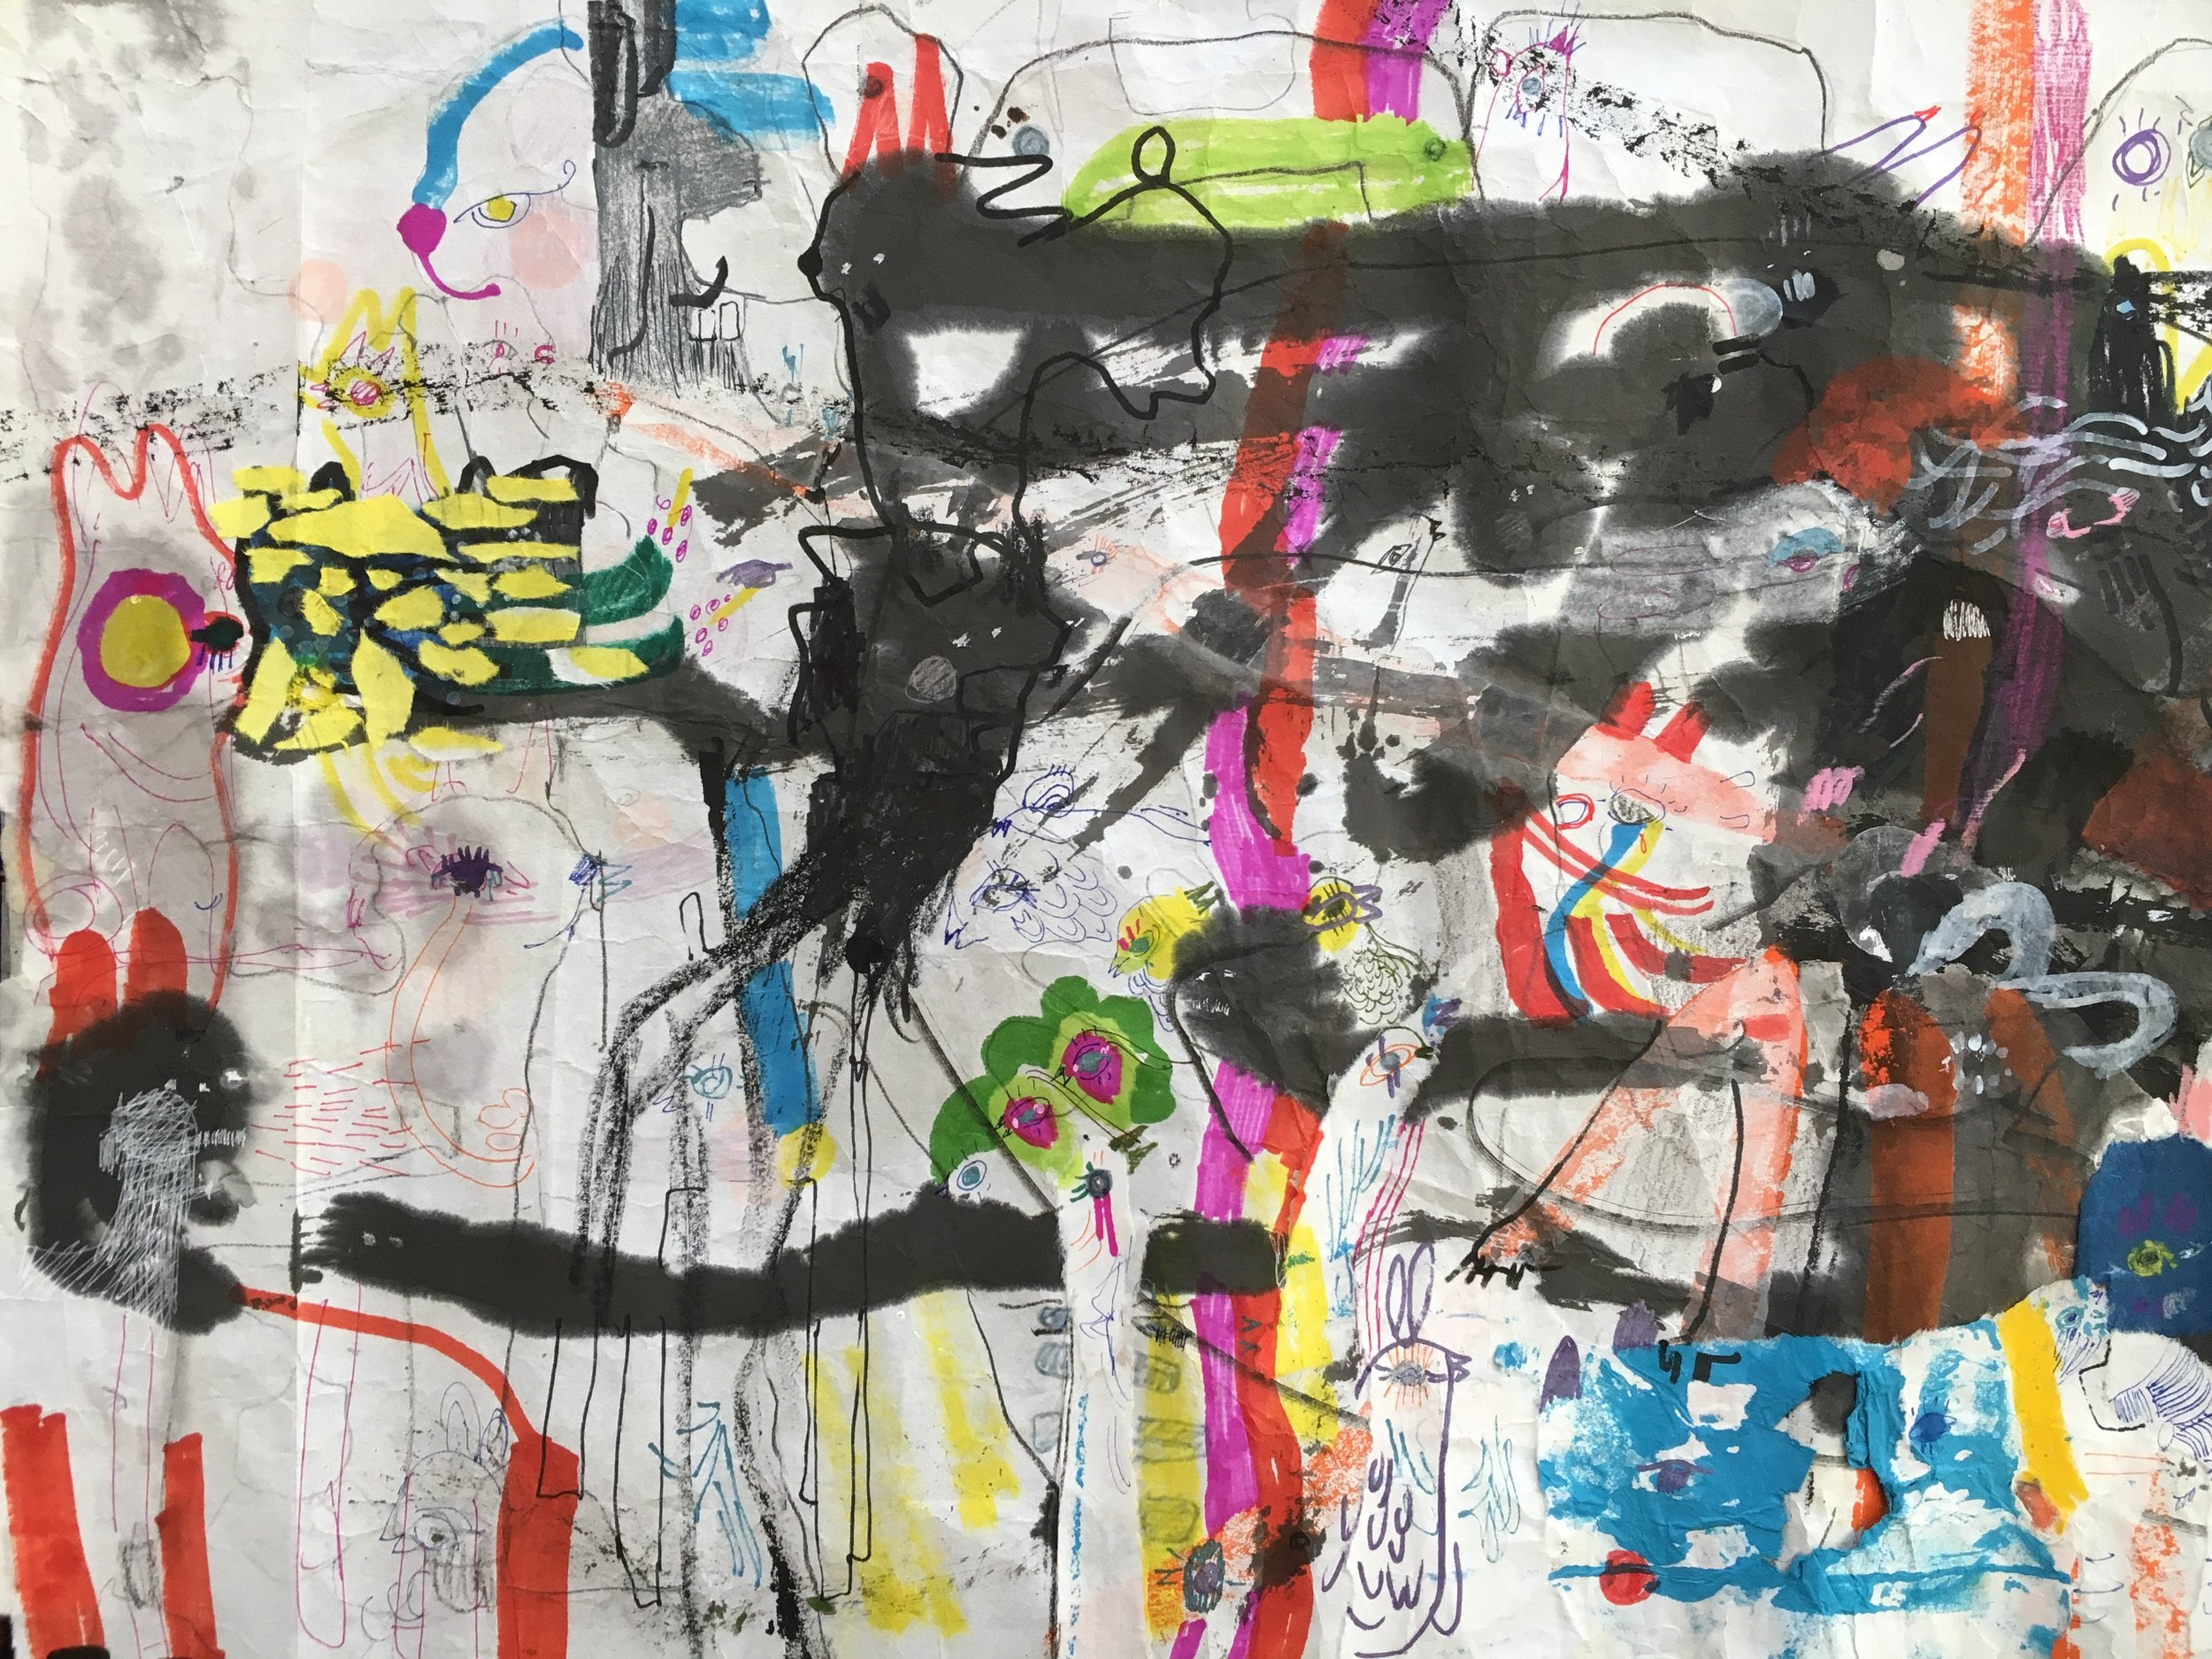 Up Above and All Around, Scroll Section 1  Ink, crayon, dye, watercolor, acrylic, pencil, and rice paper on mulberry paper 2.5 x 30 feet*